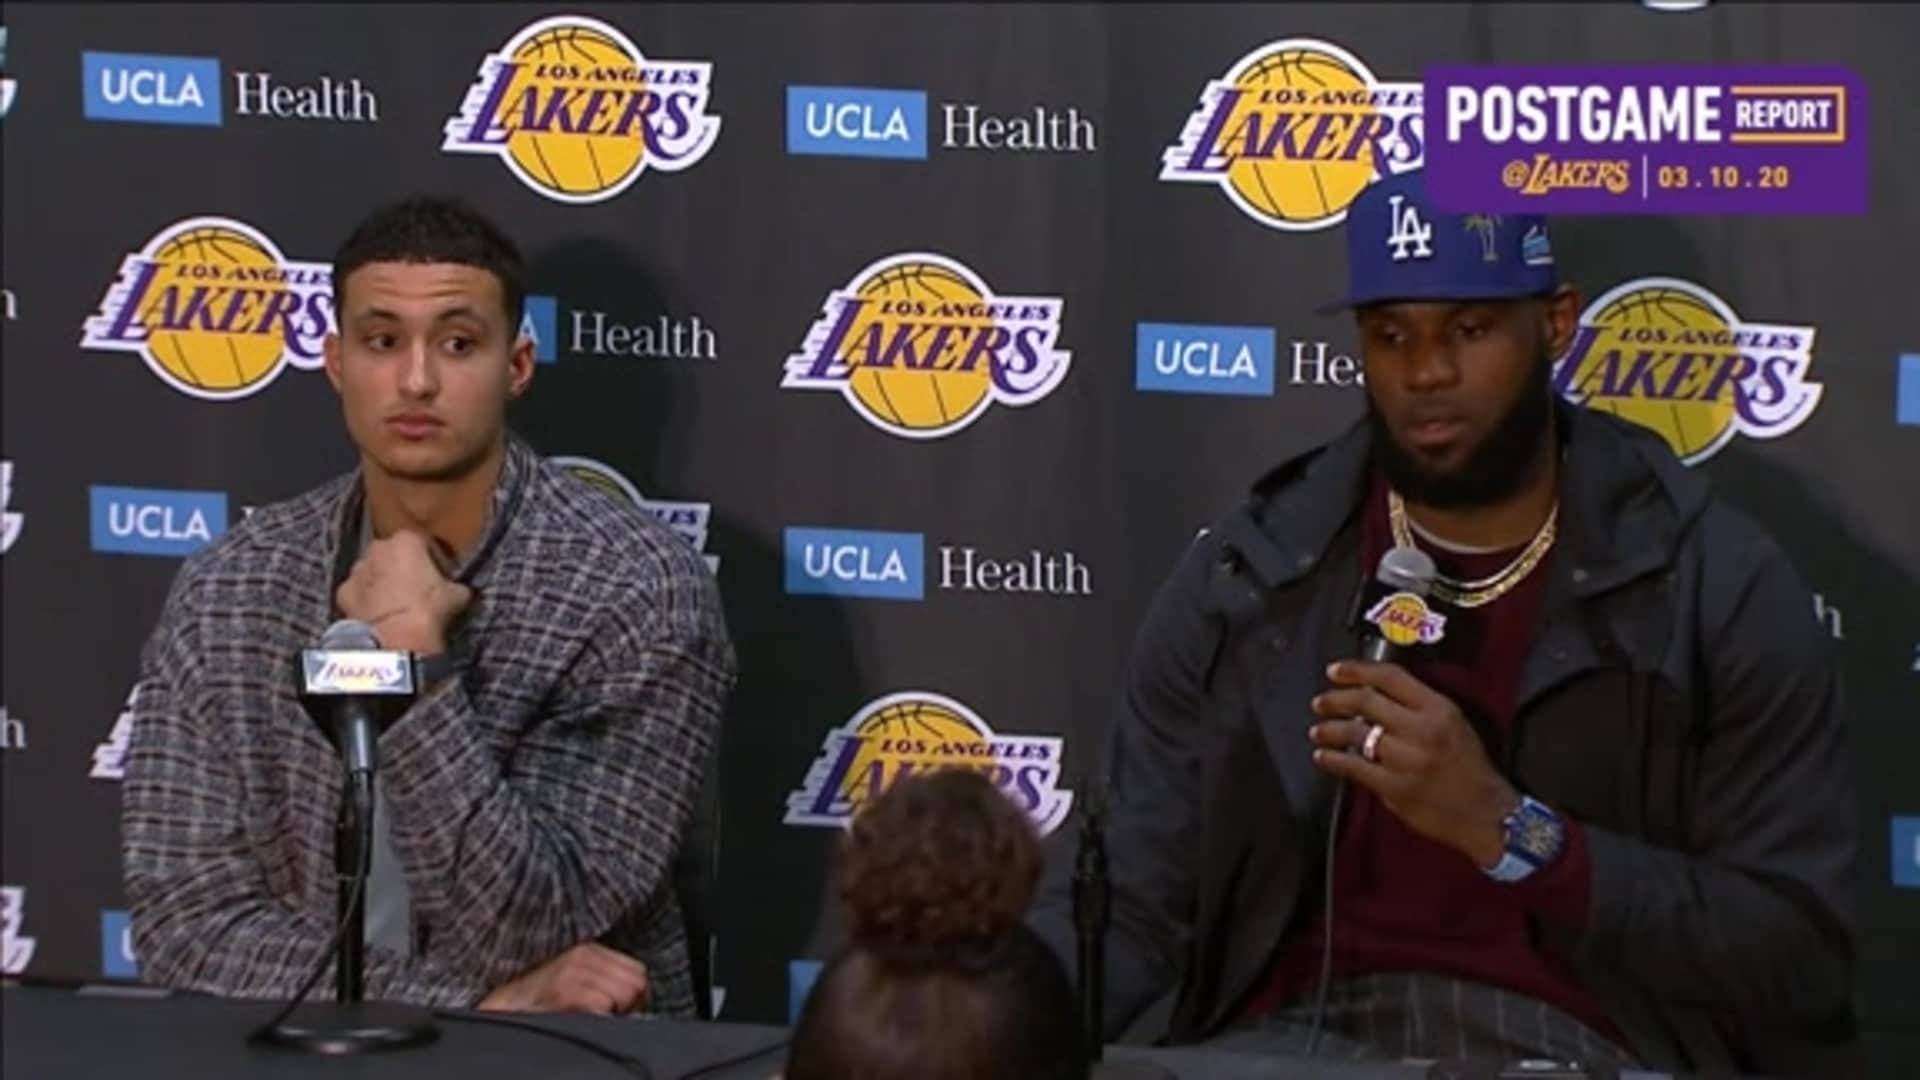 Lakers Postgame: LeBron James & Kyle Kuzma (3/10/20)